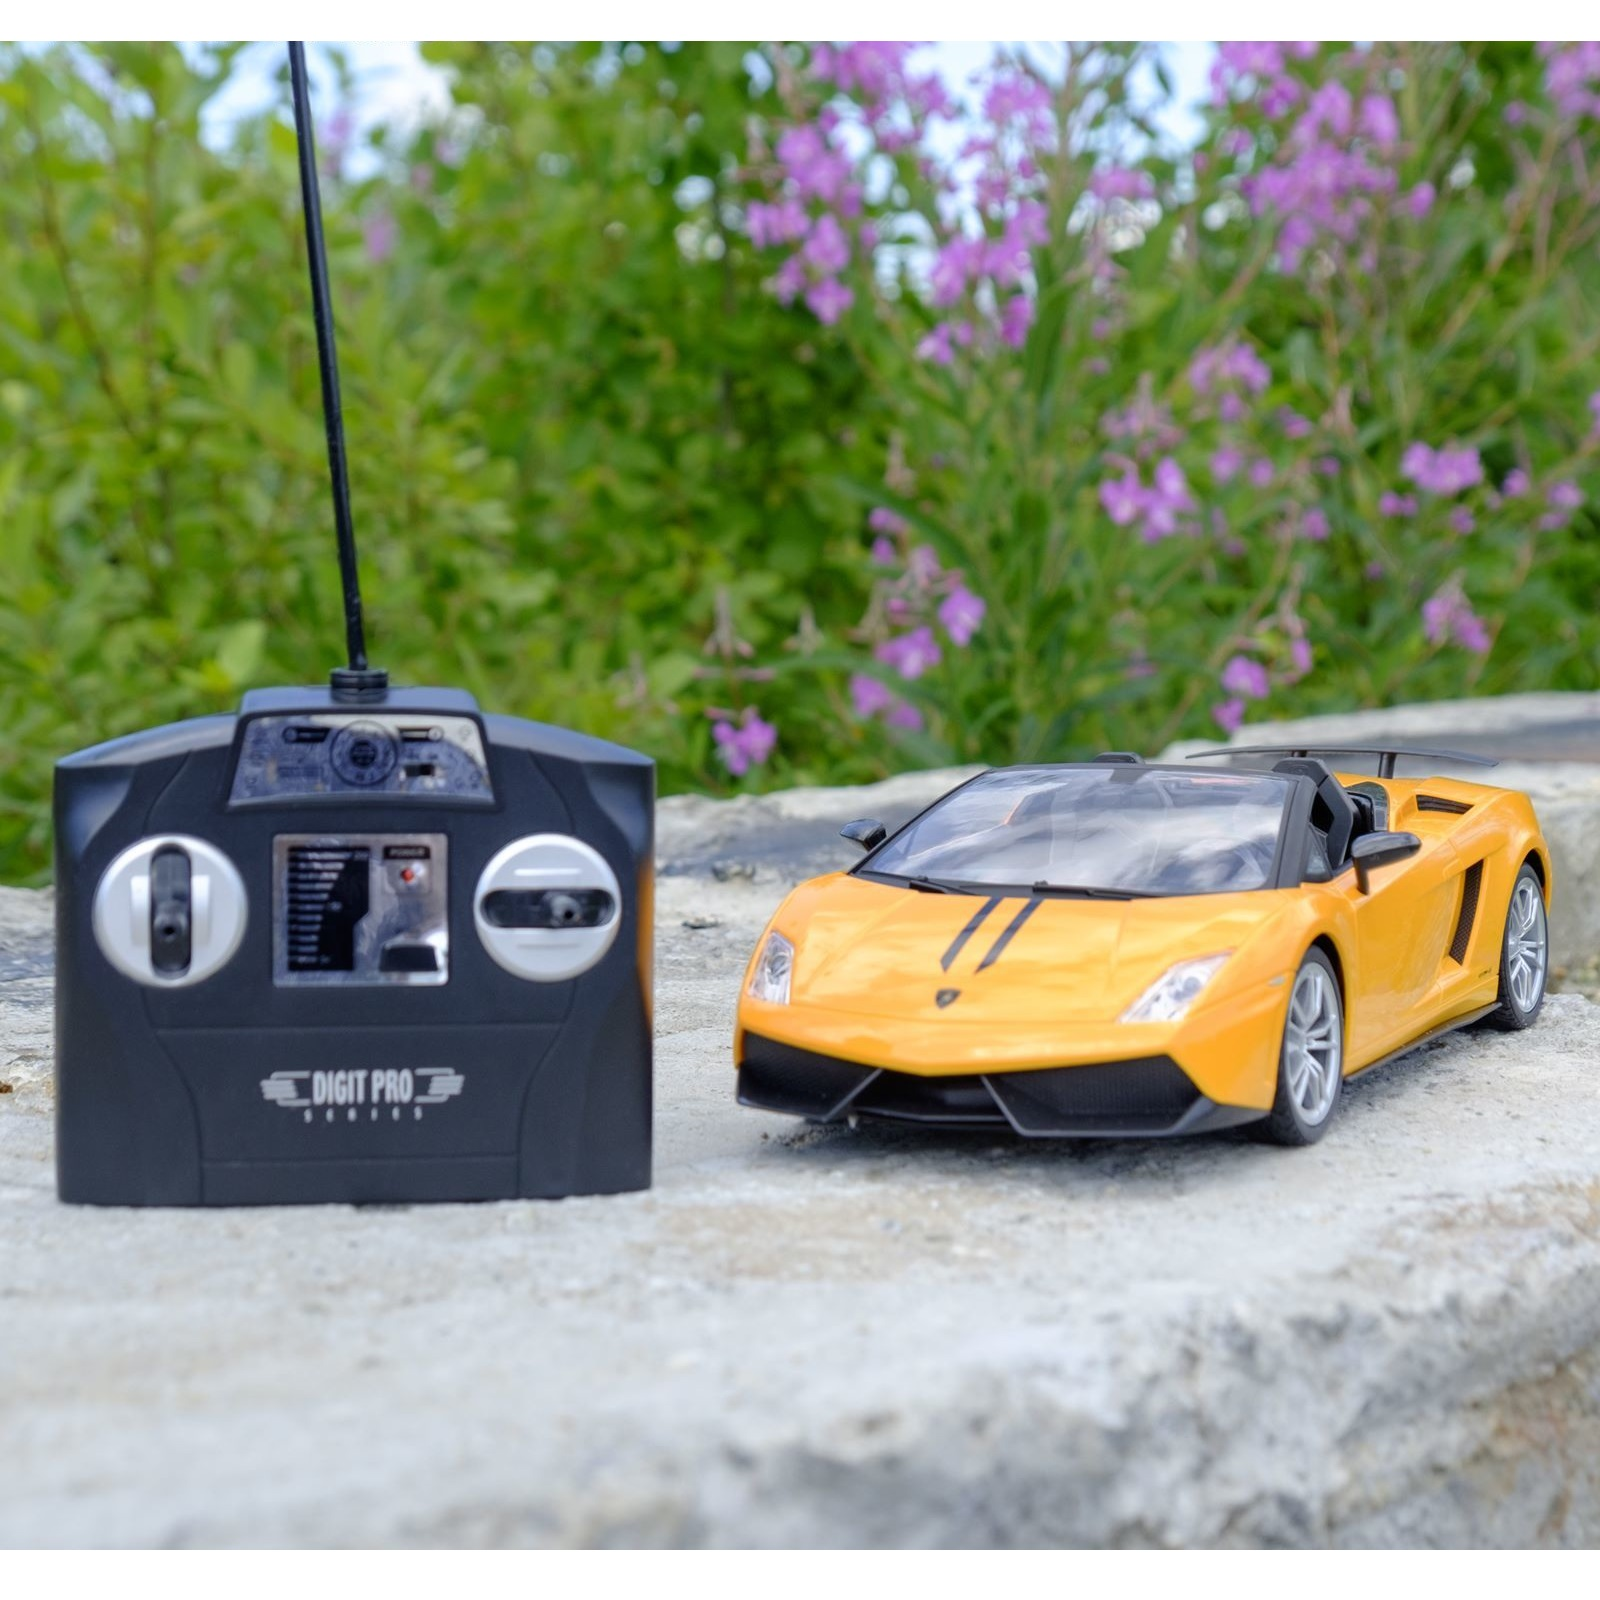 Машина р/у Lamborghini LP570-4 Superleggera (на аккум.), желтая, 1:14